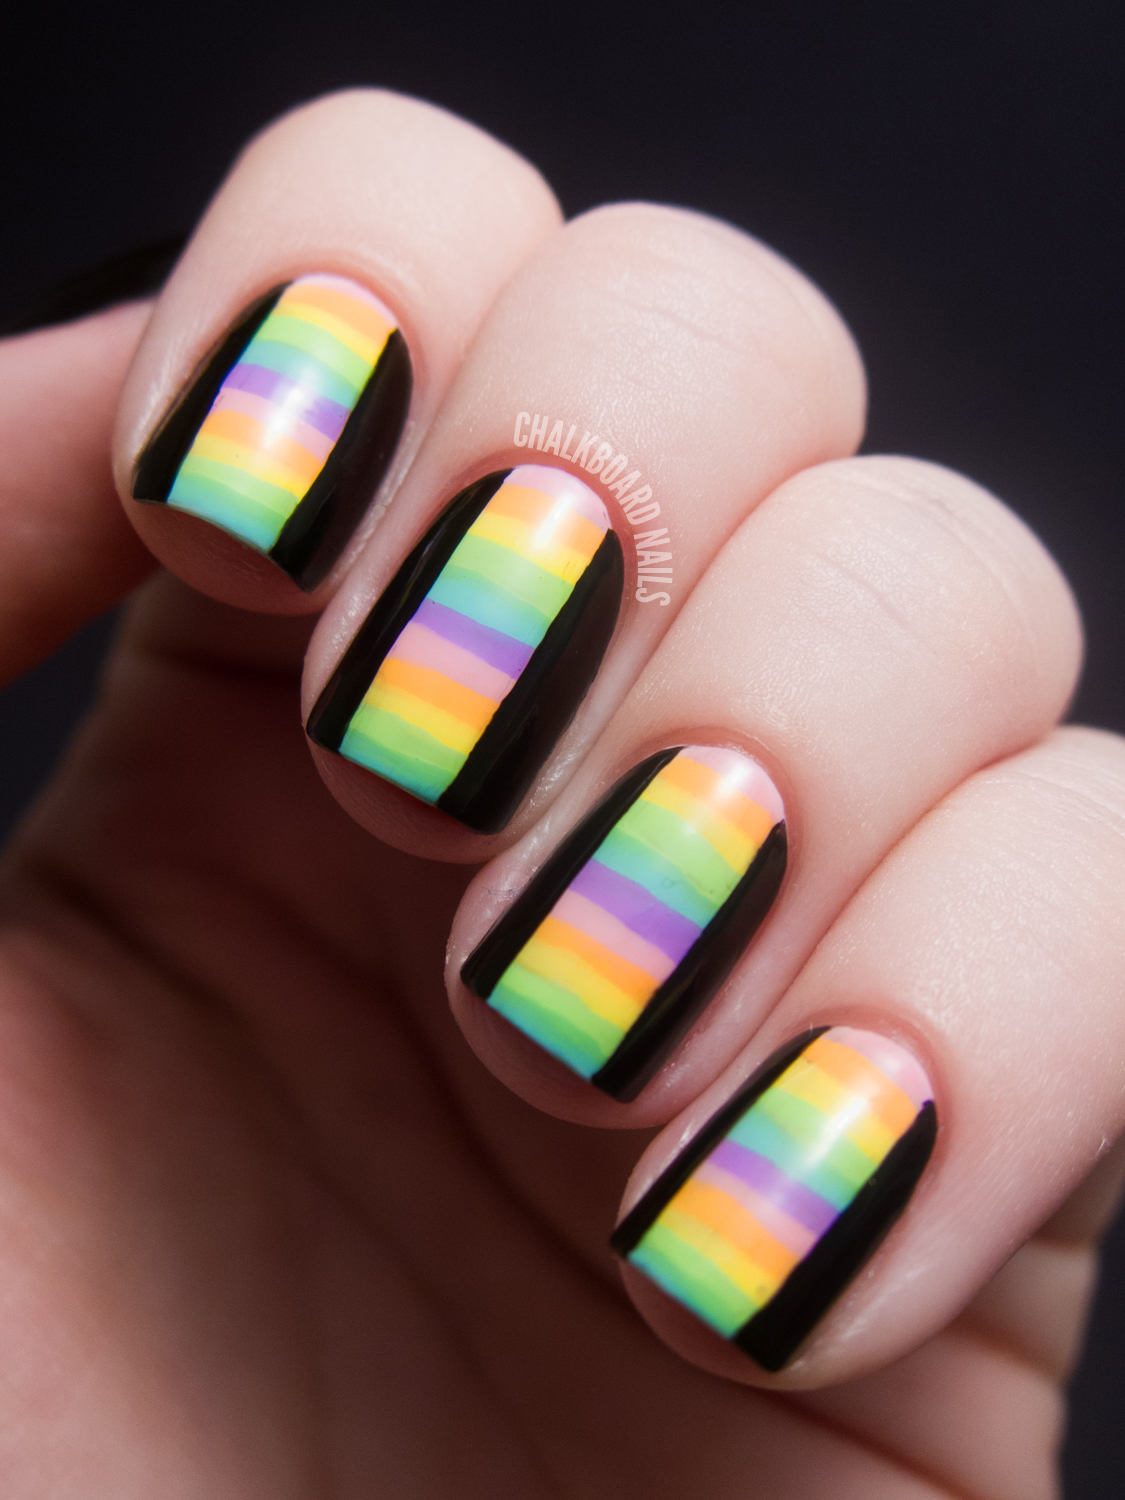 31dc2012 Day 10 Gradient Nails: 31DC2012: Day 12, Stripes